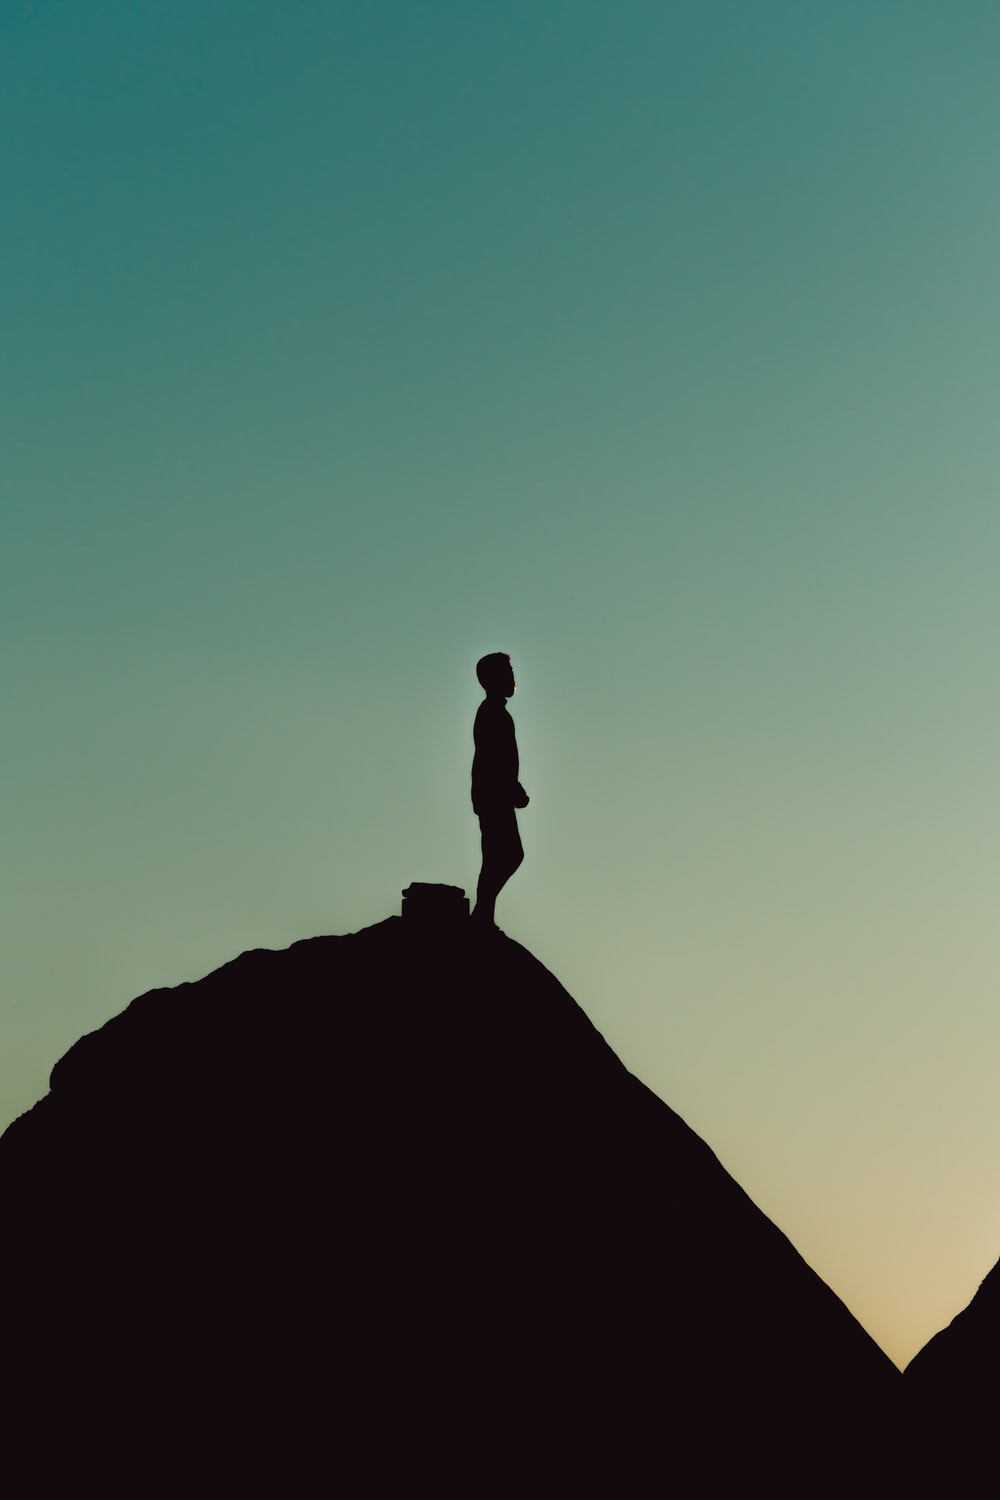 silhouette of man standing on rock formation during daytime